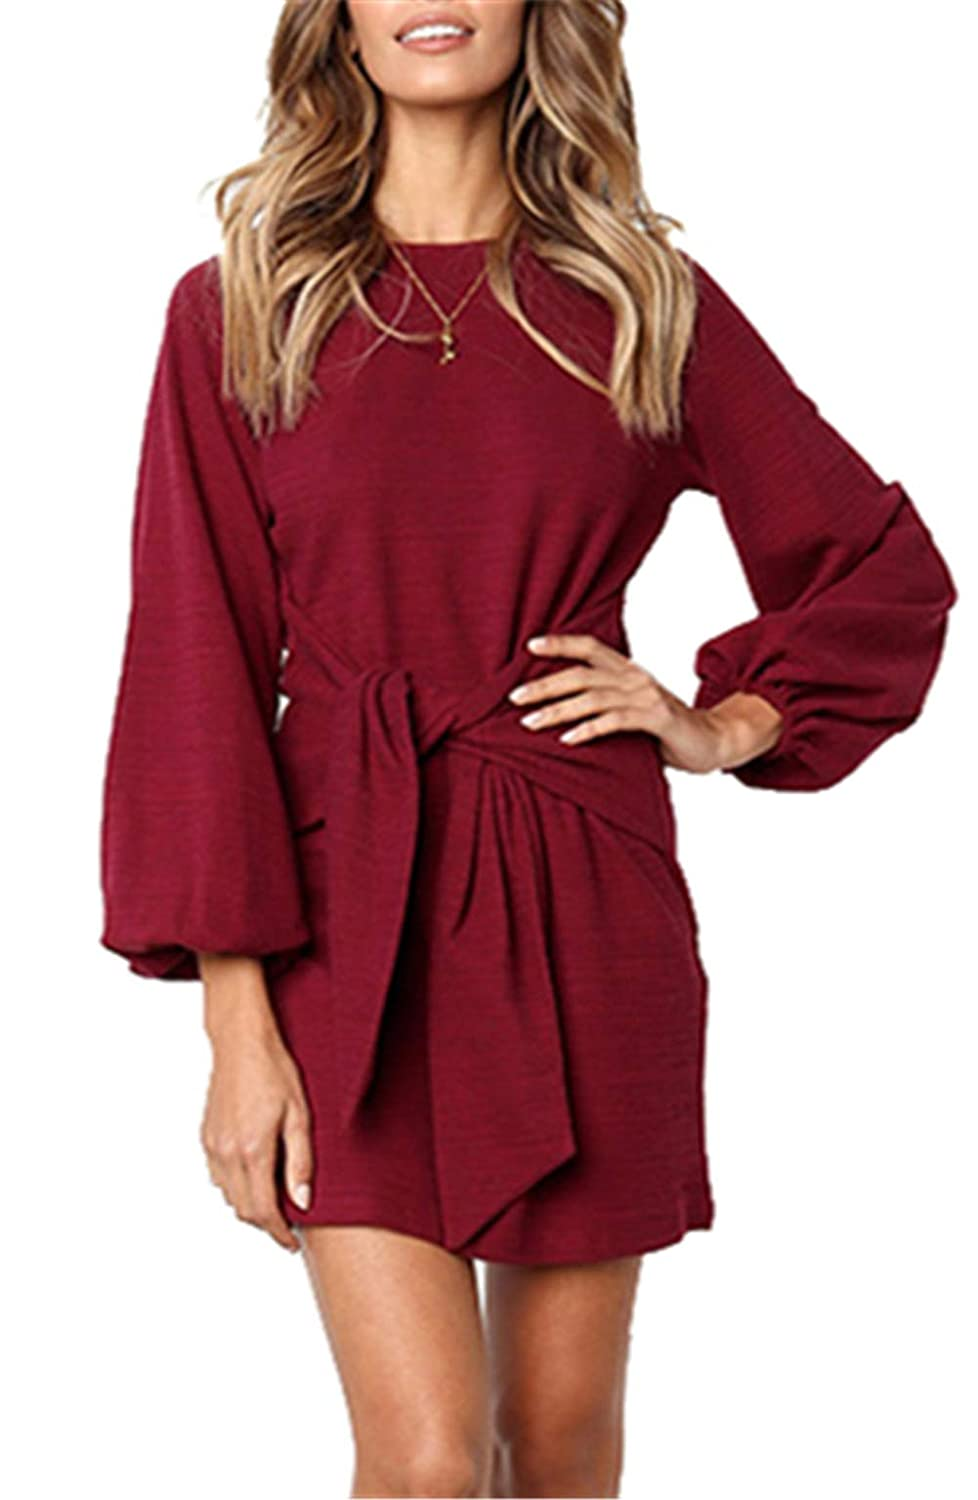 onlypuff Puff Sleeve Dresses for Women Belted Tie Front Pencil Tunic Dress Casual Round Neck Solid Color YS0187